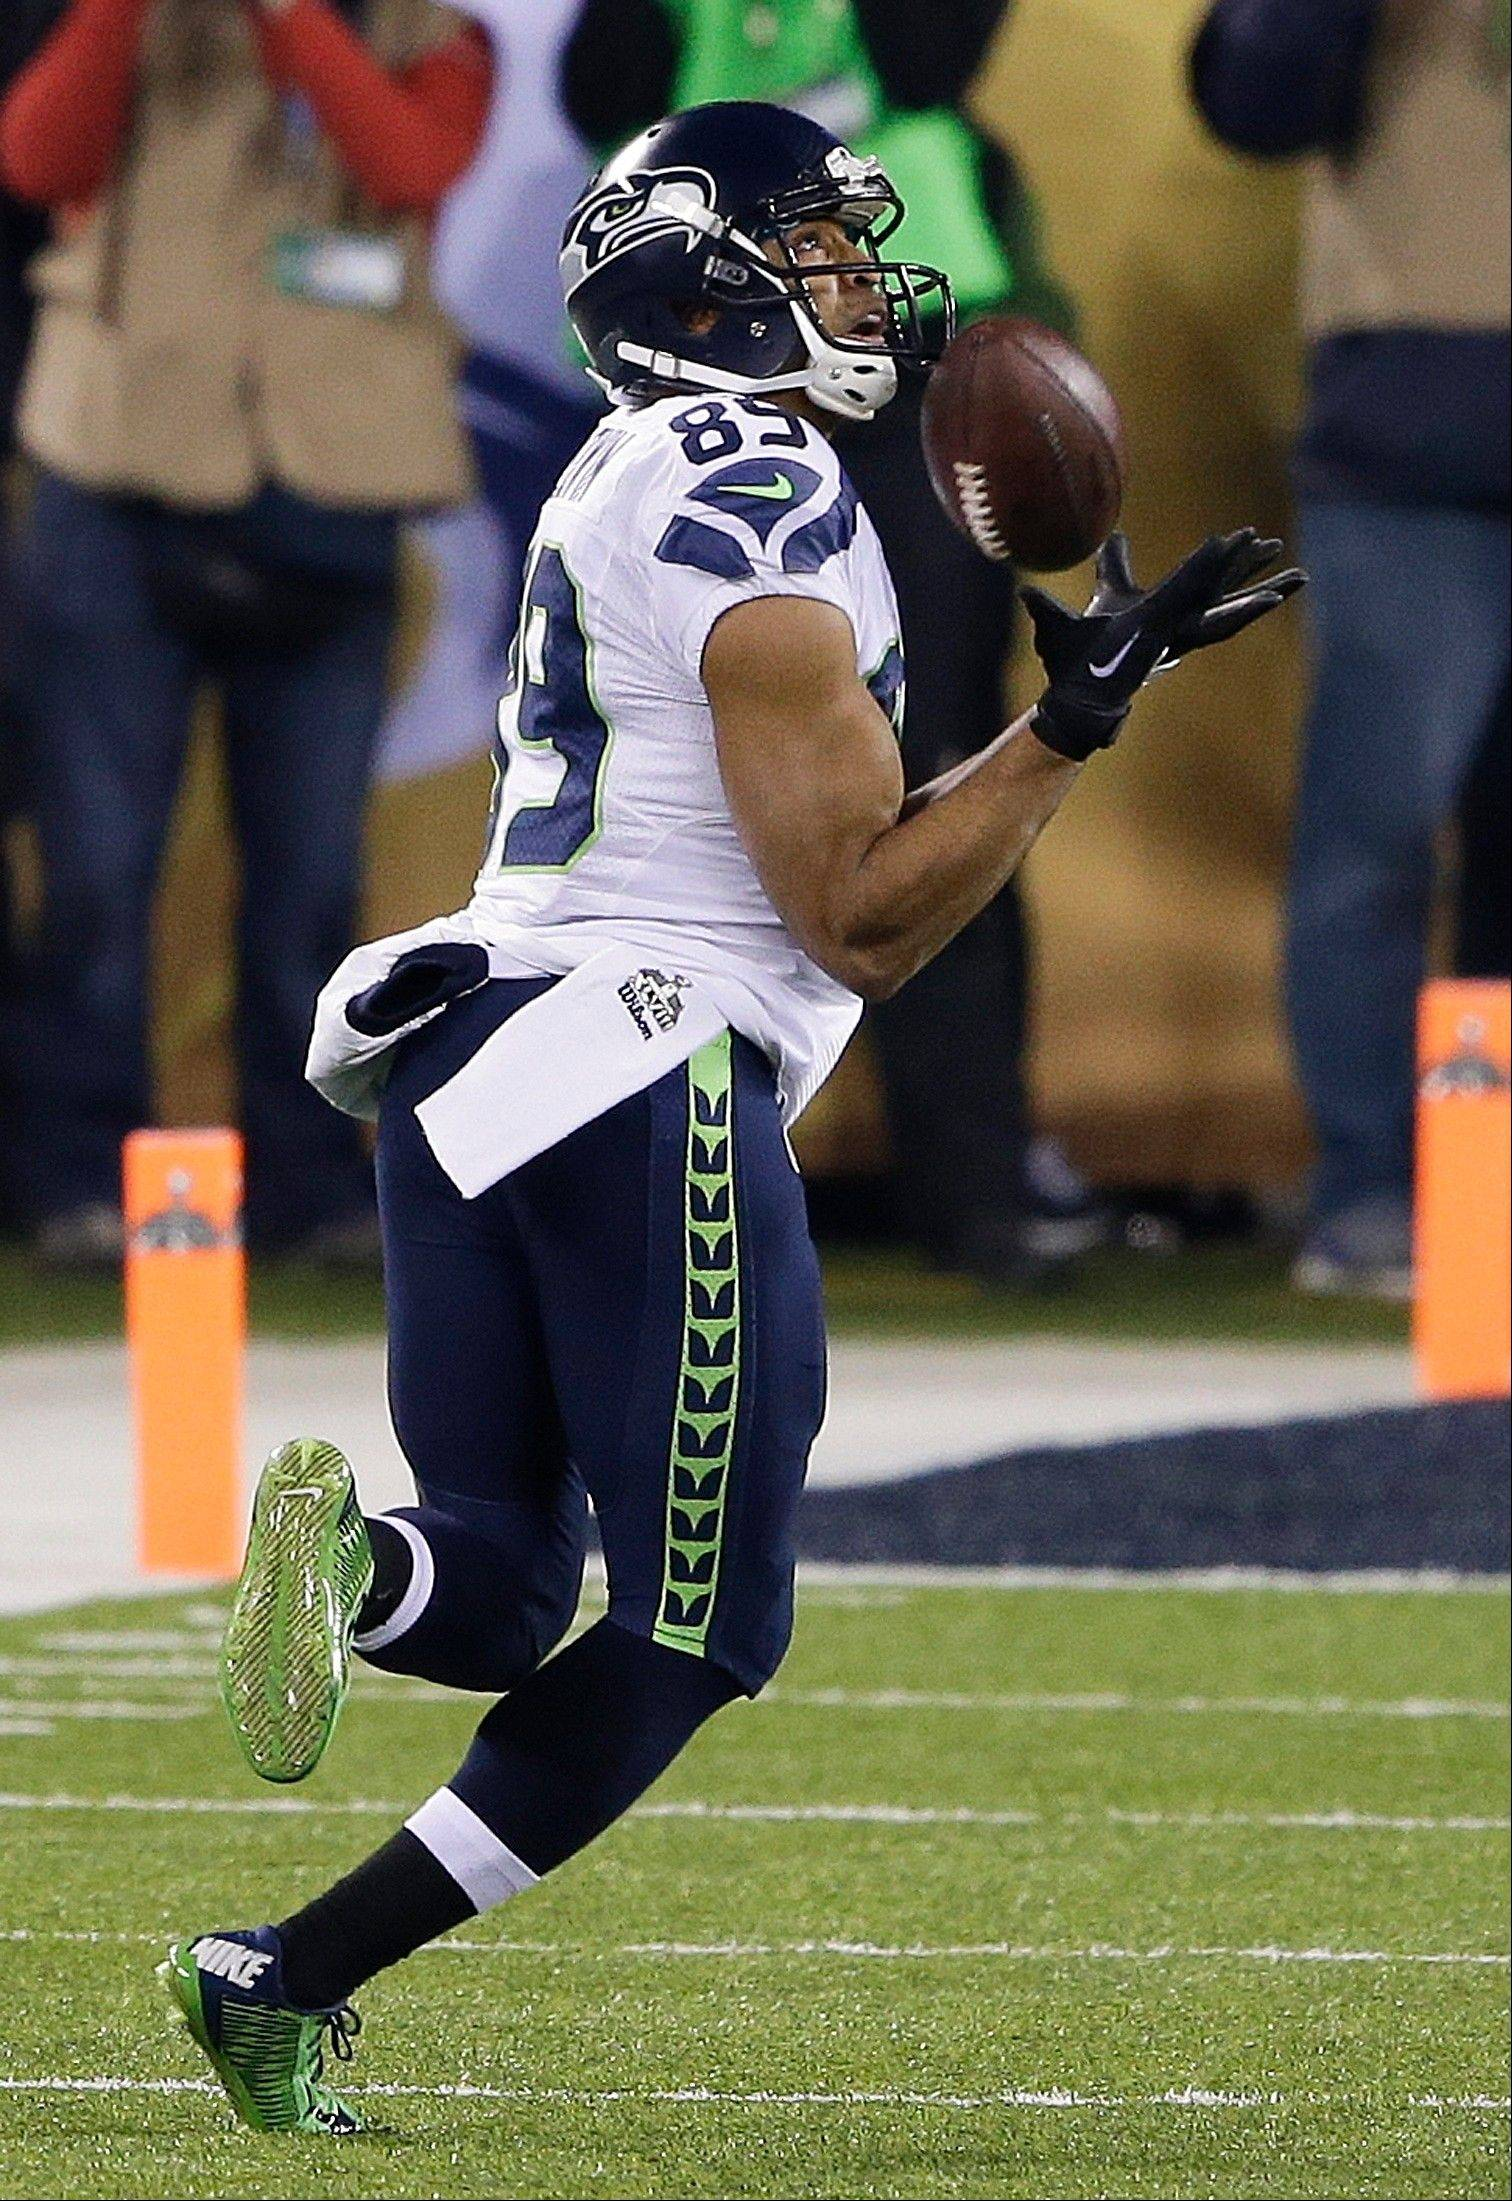 Seattle Seahawks wide receiver Doug Baldwin makes a catch during the first half of the NFL Super Bowl XLVIII football game.